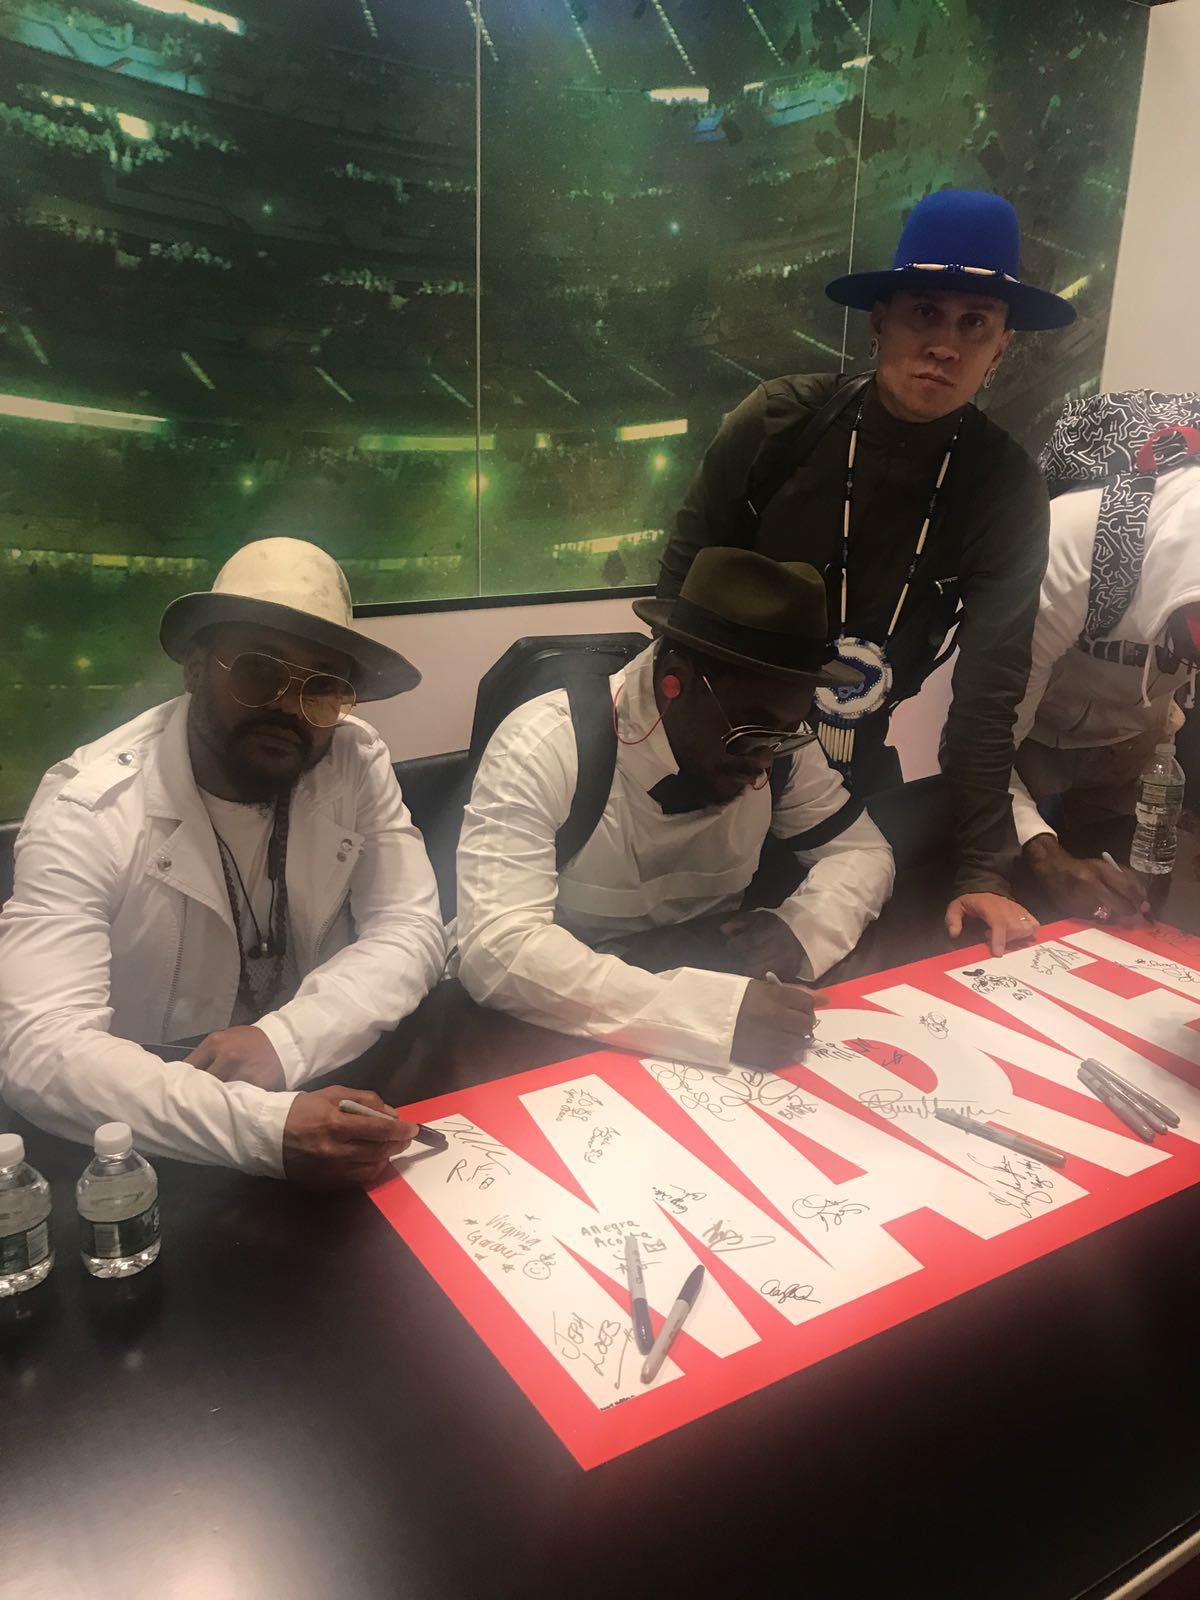 We're at the @Marvel booth now!! Drop by to get your copies of #MastersOfTheSun signed #NYCC https://t.co/Vt4Q8jcgME